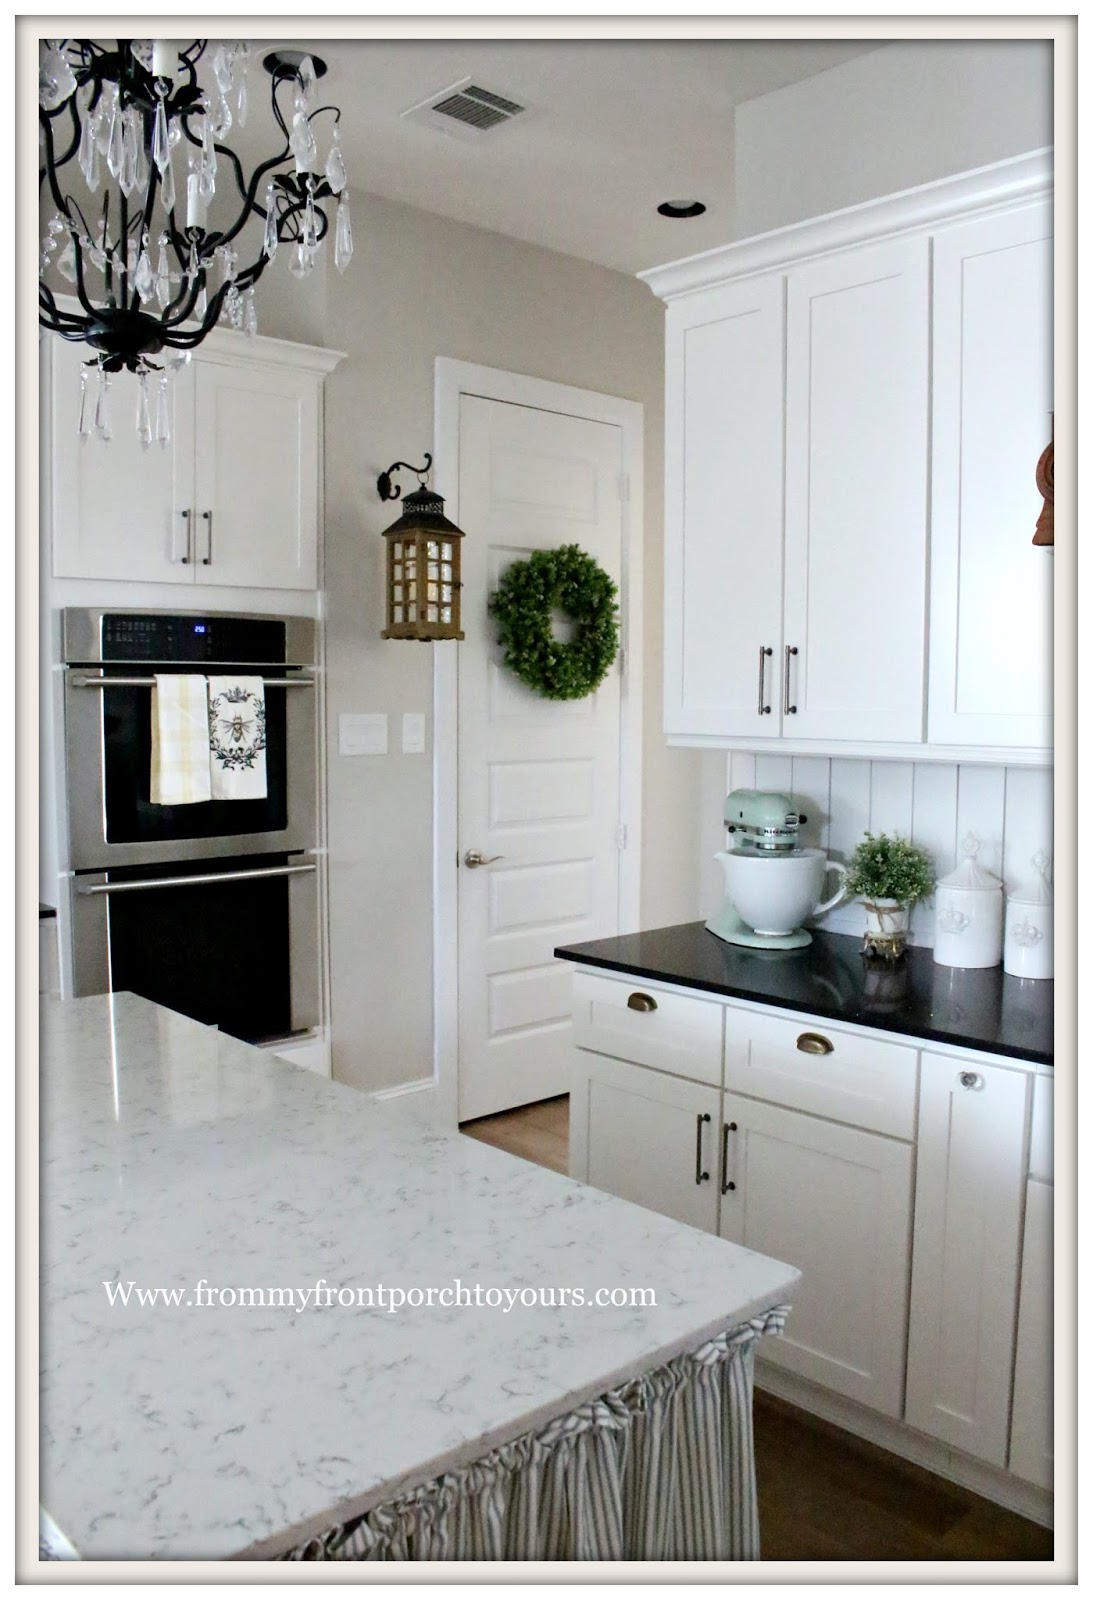 Repaint Kitchen Cabinets Wood Floors In From My Front Porch To Yours: Simple Winter French Country ...